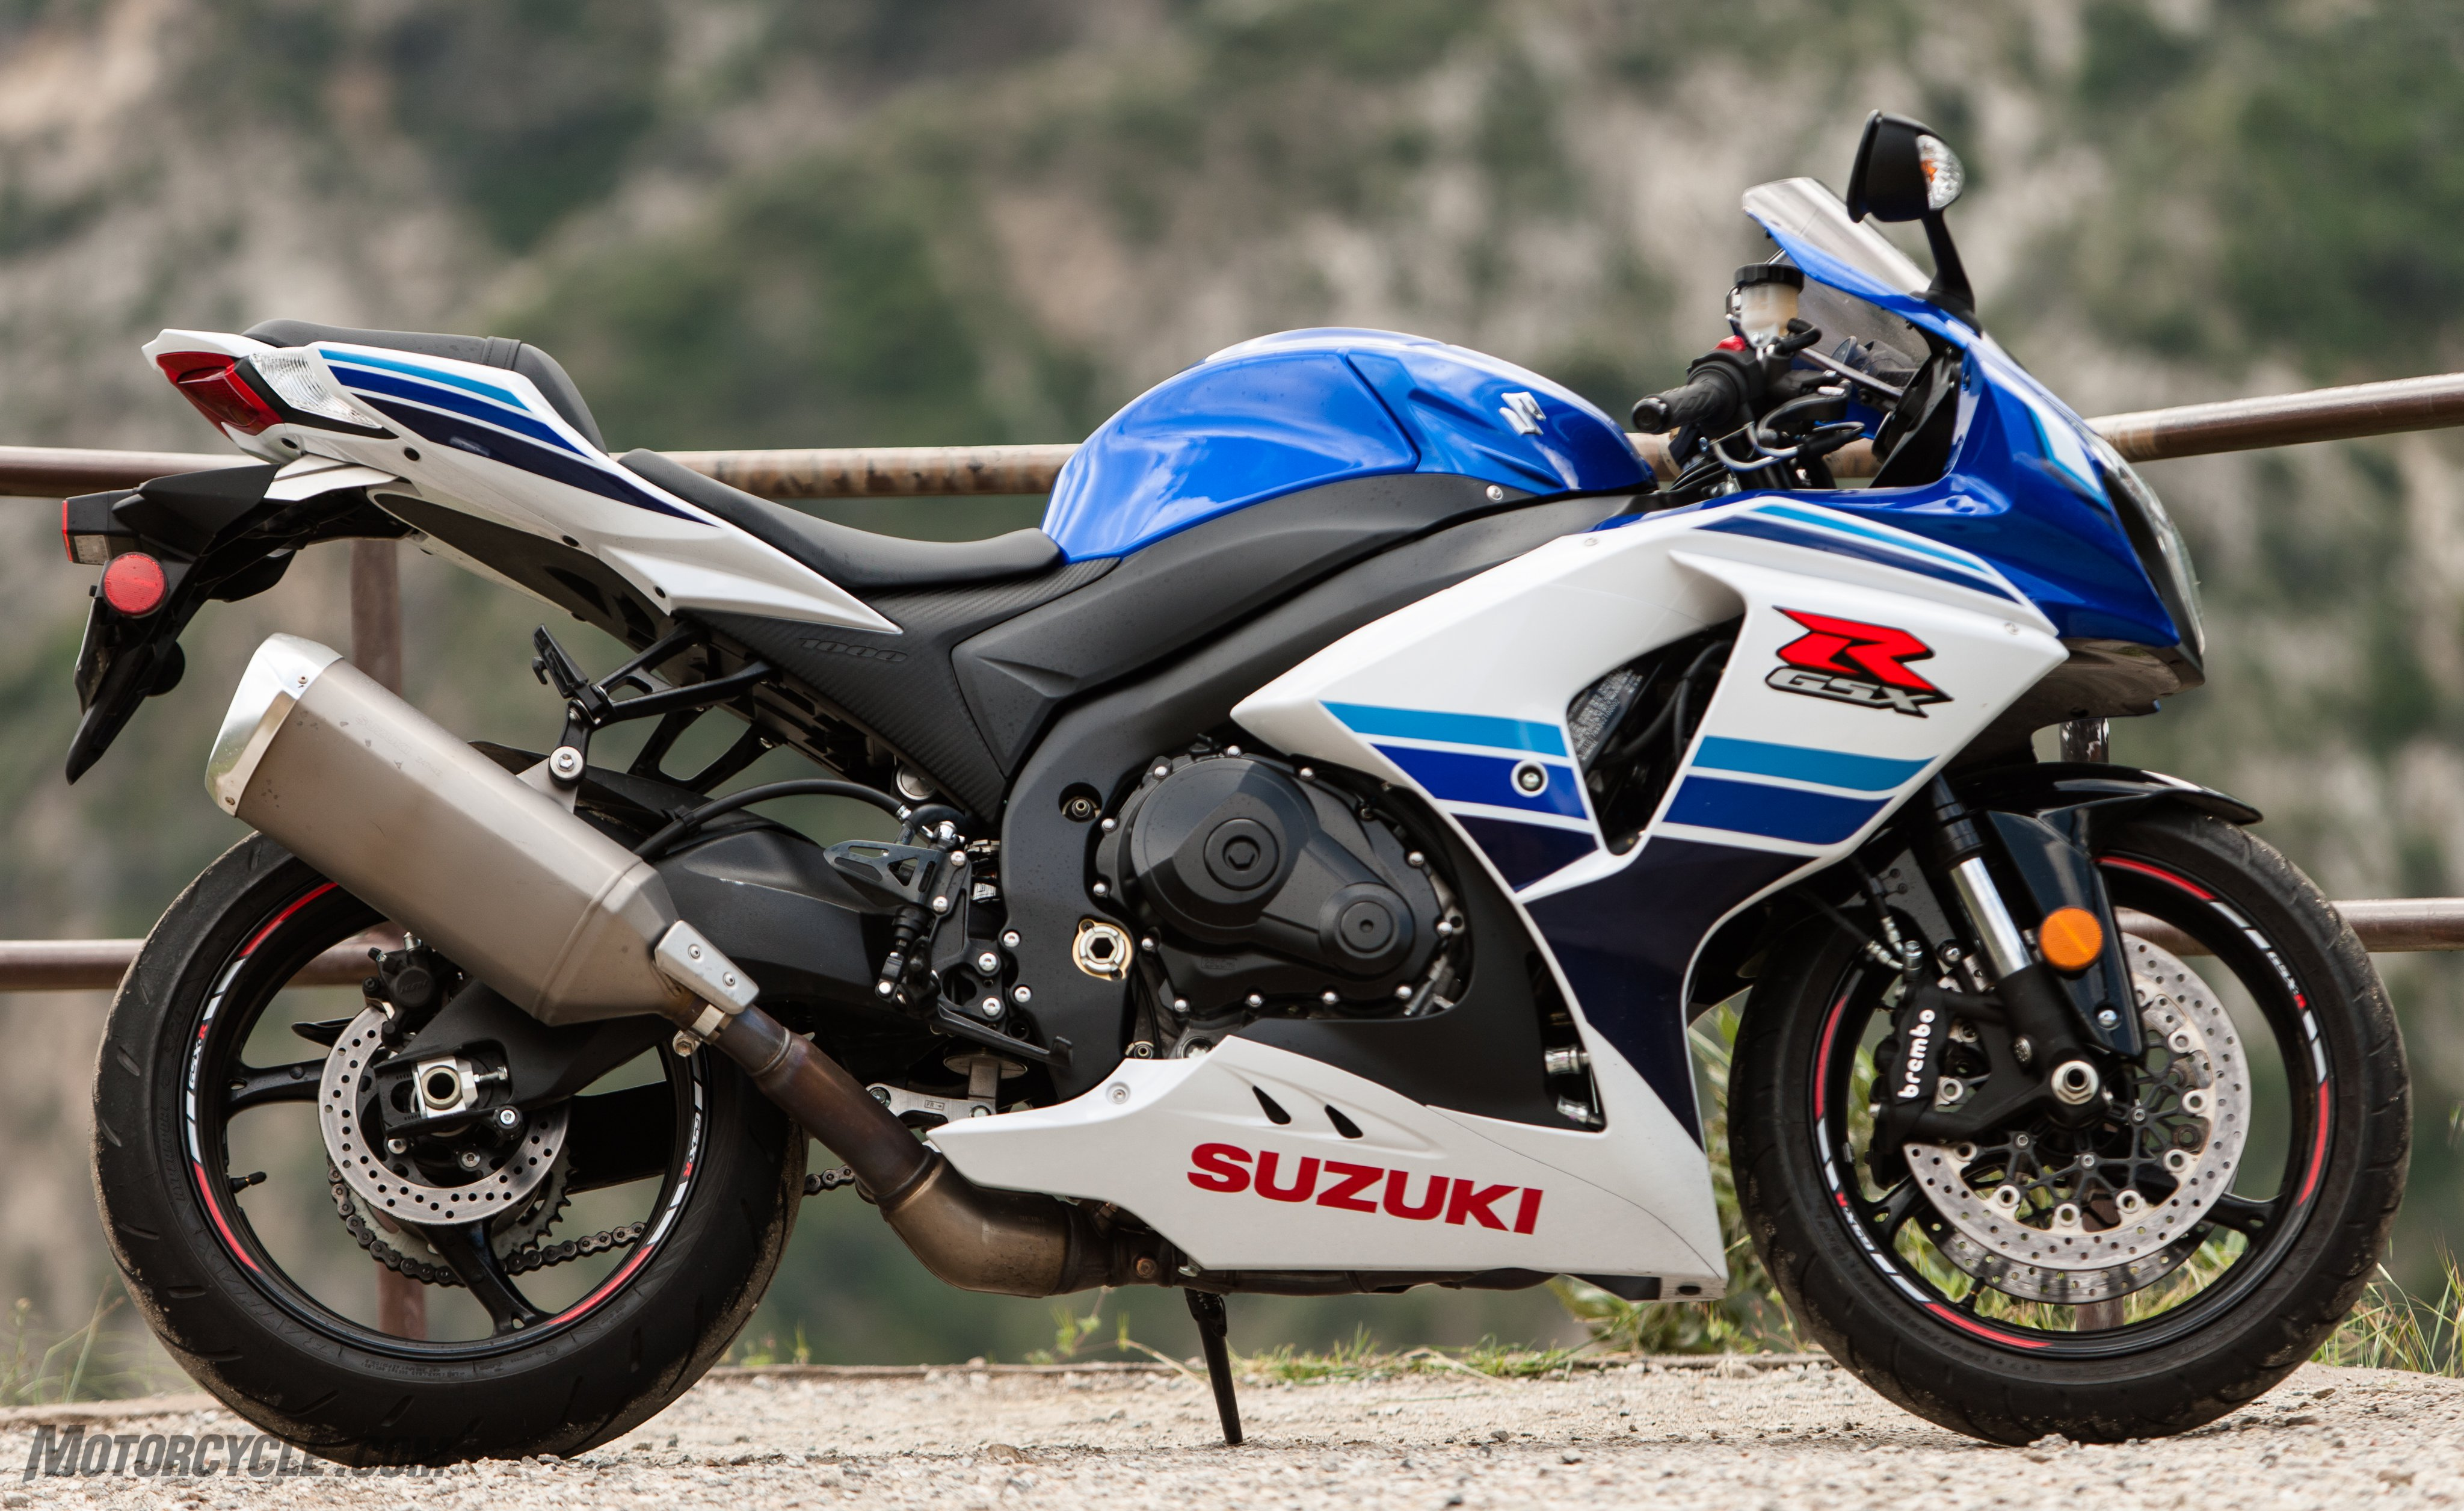 Suzuki gsx-r photo - 1